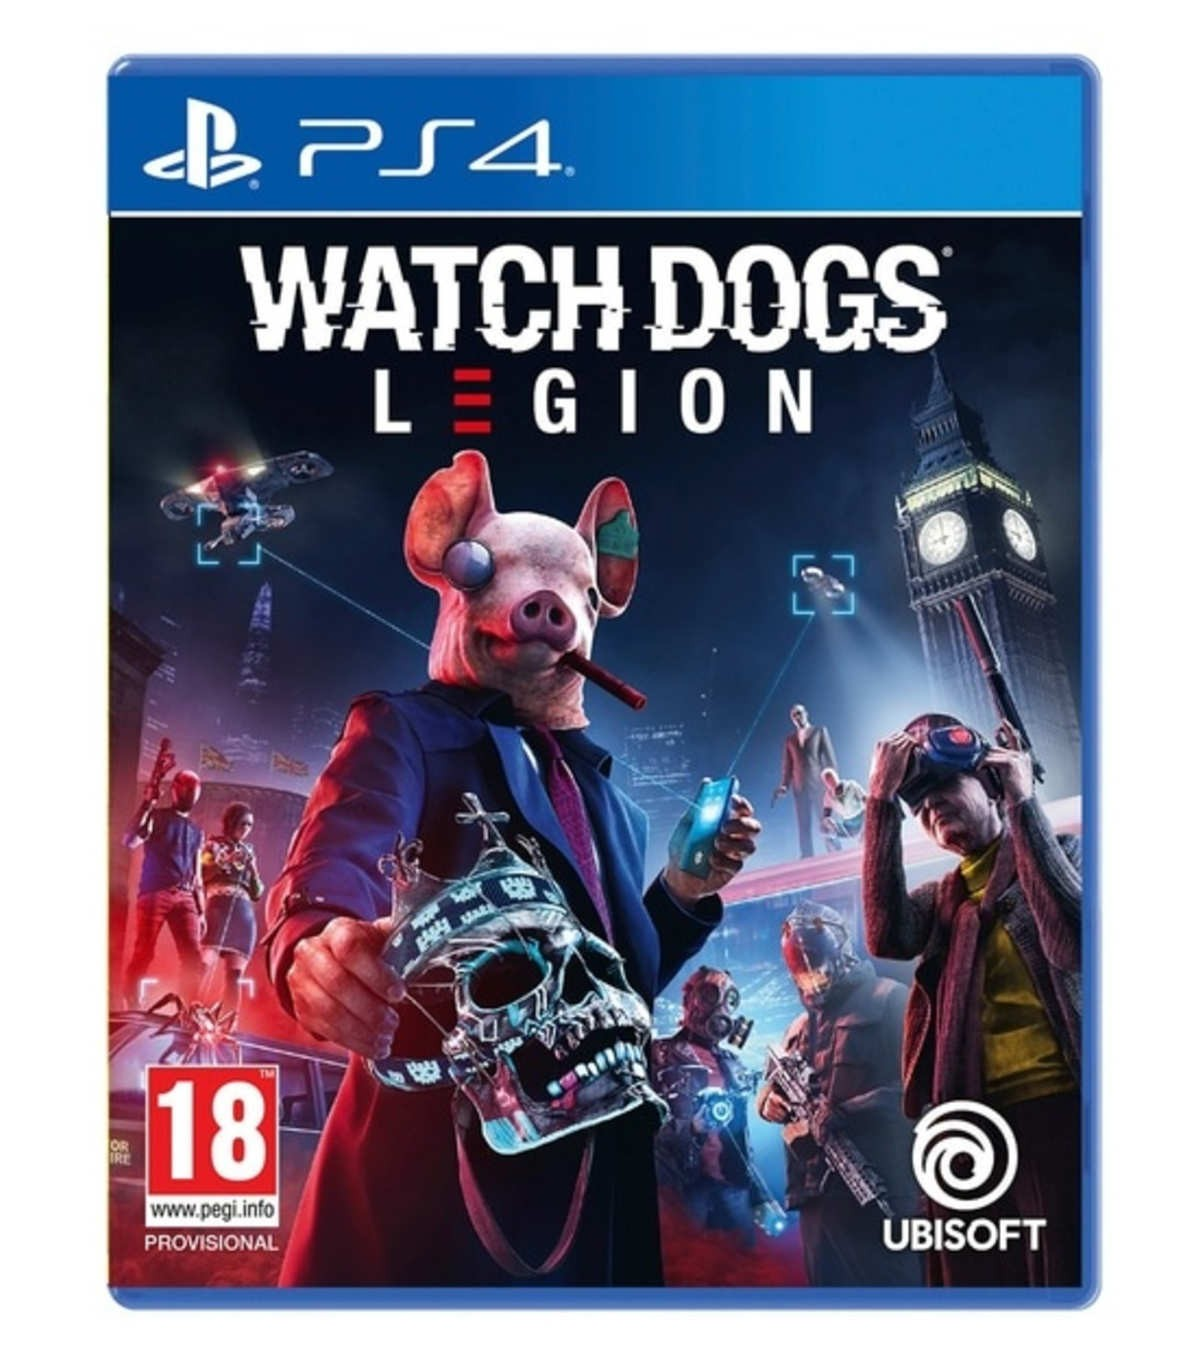 بازی Watch Dogs Legion - پلی استیشن 4